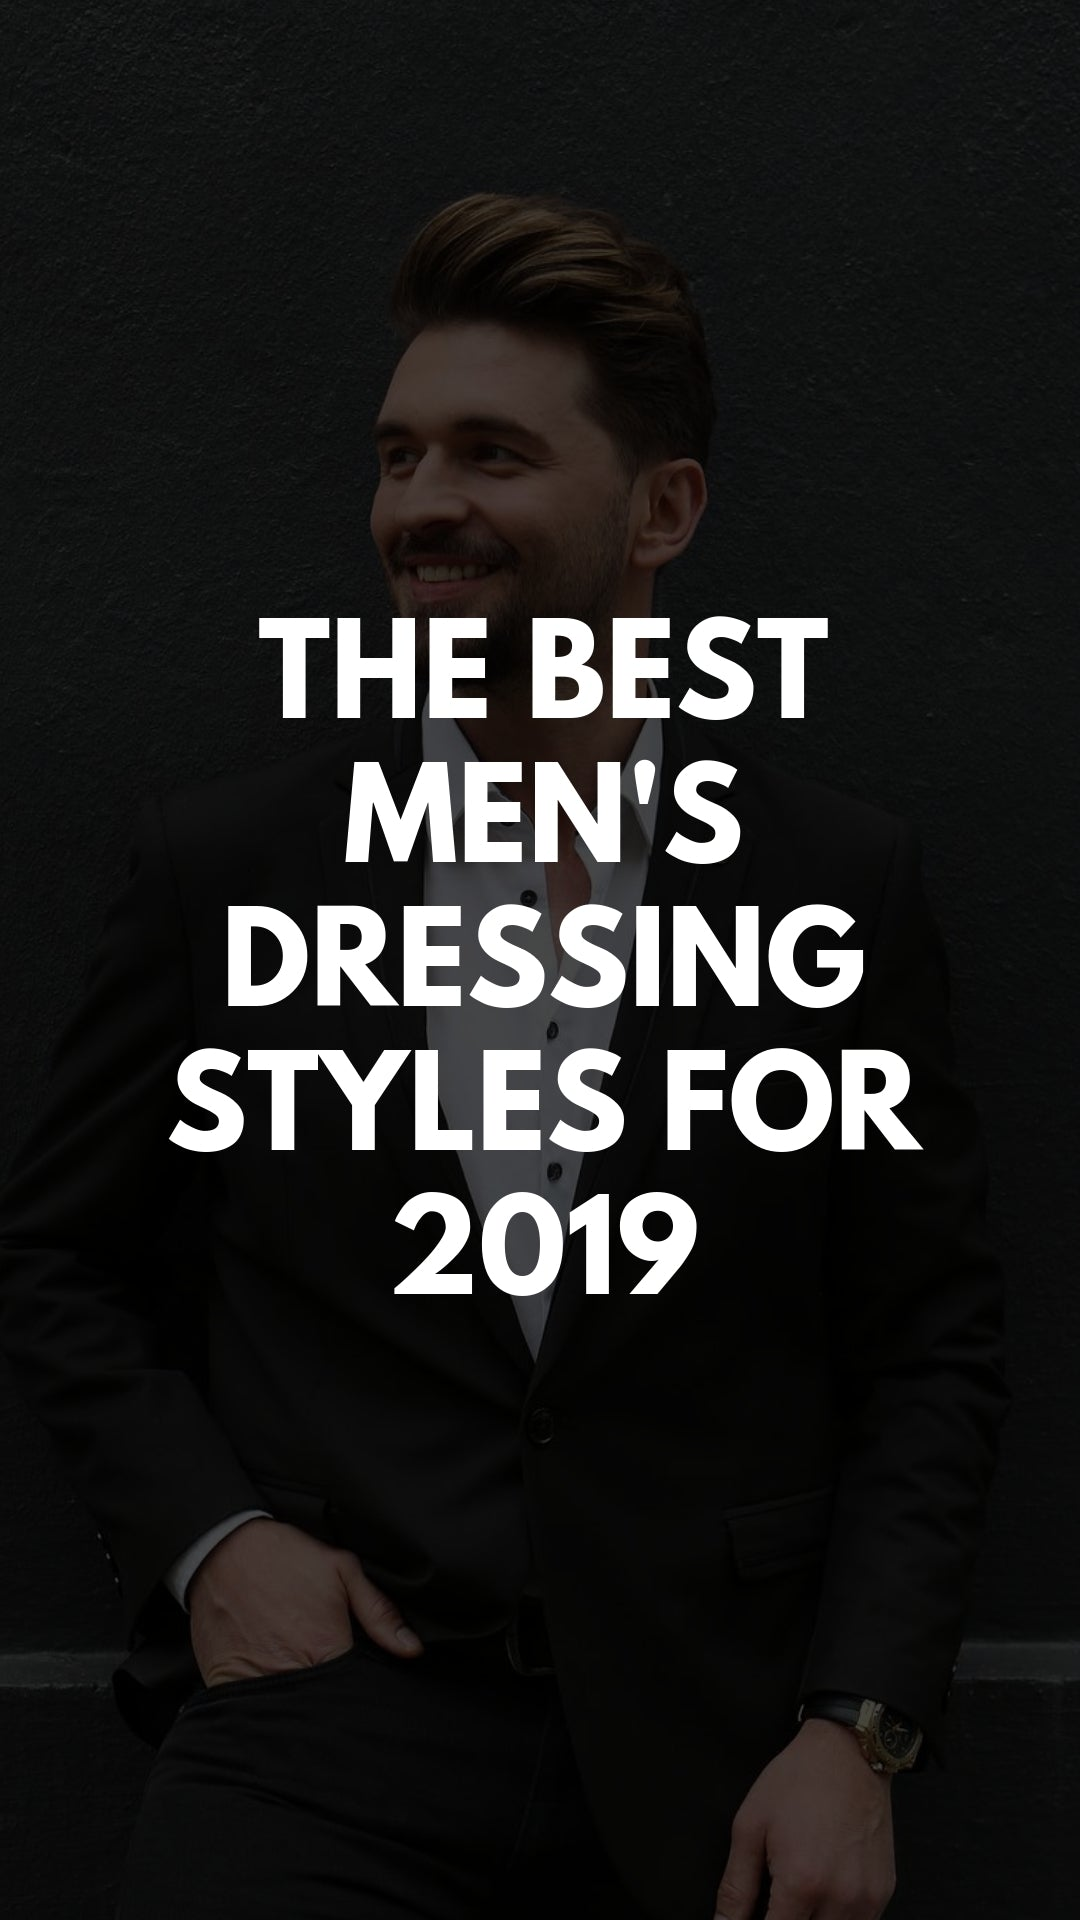 The Best Men's Dressing Styles for 2019 #mens #dressing #style #mensfashion